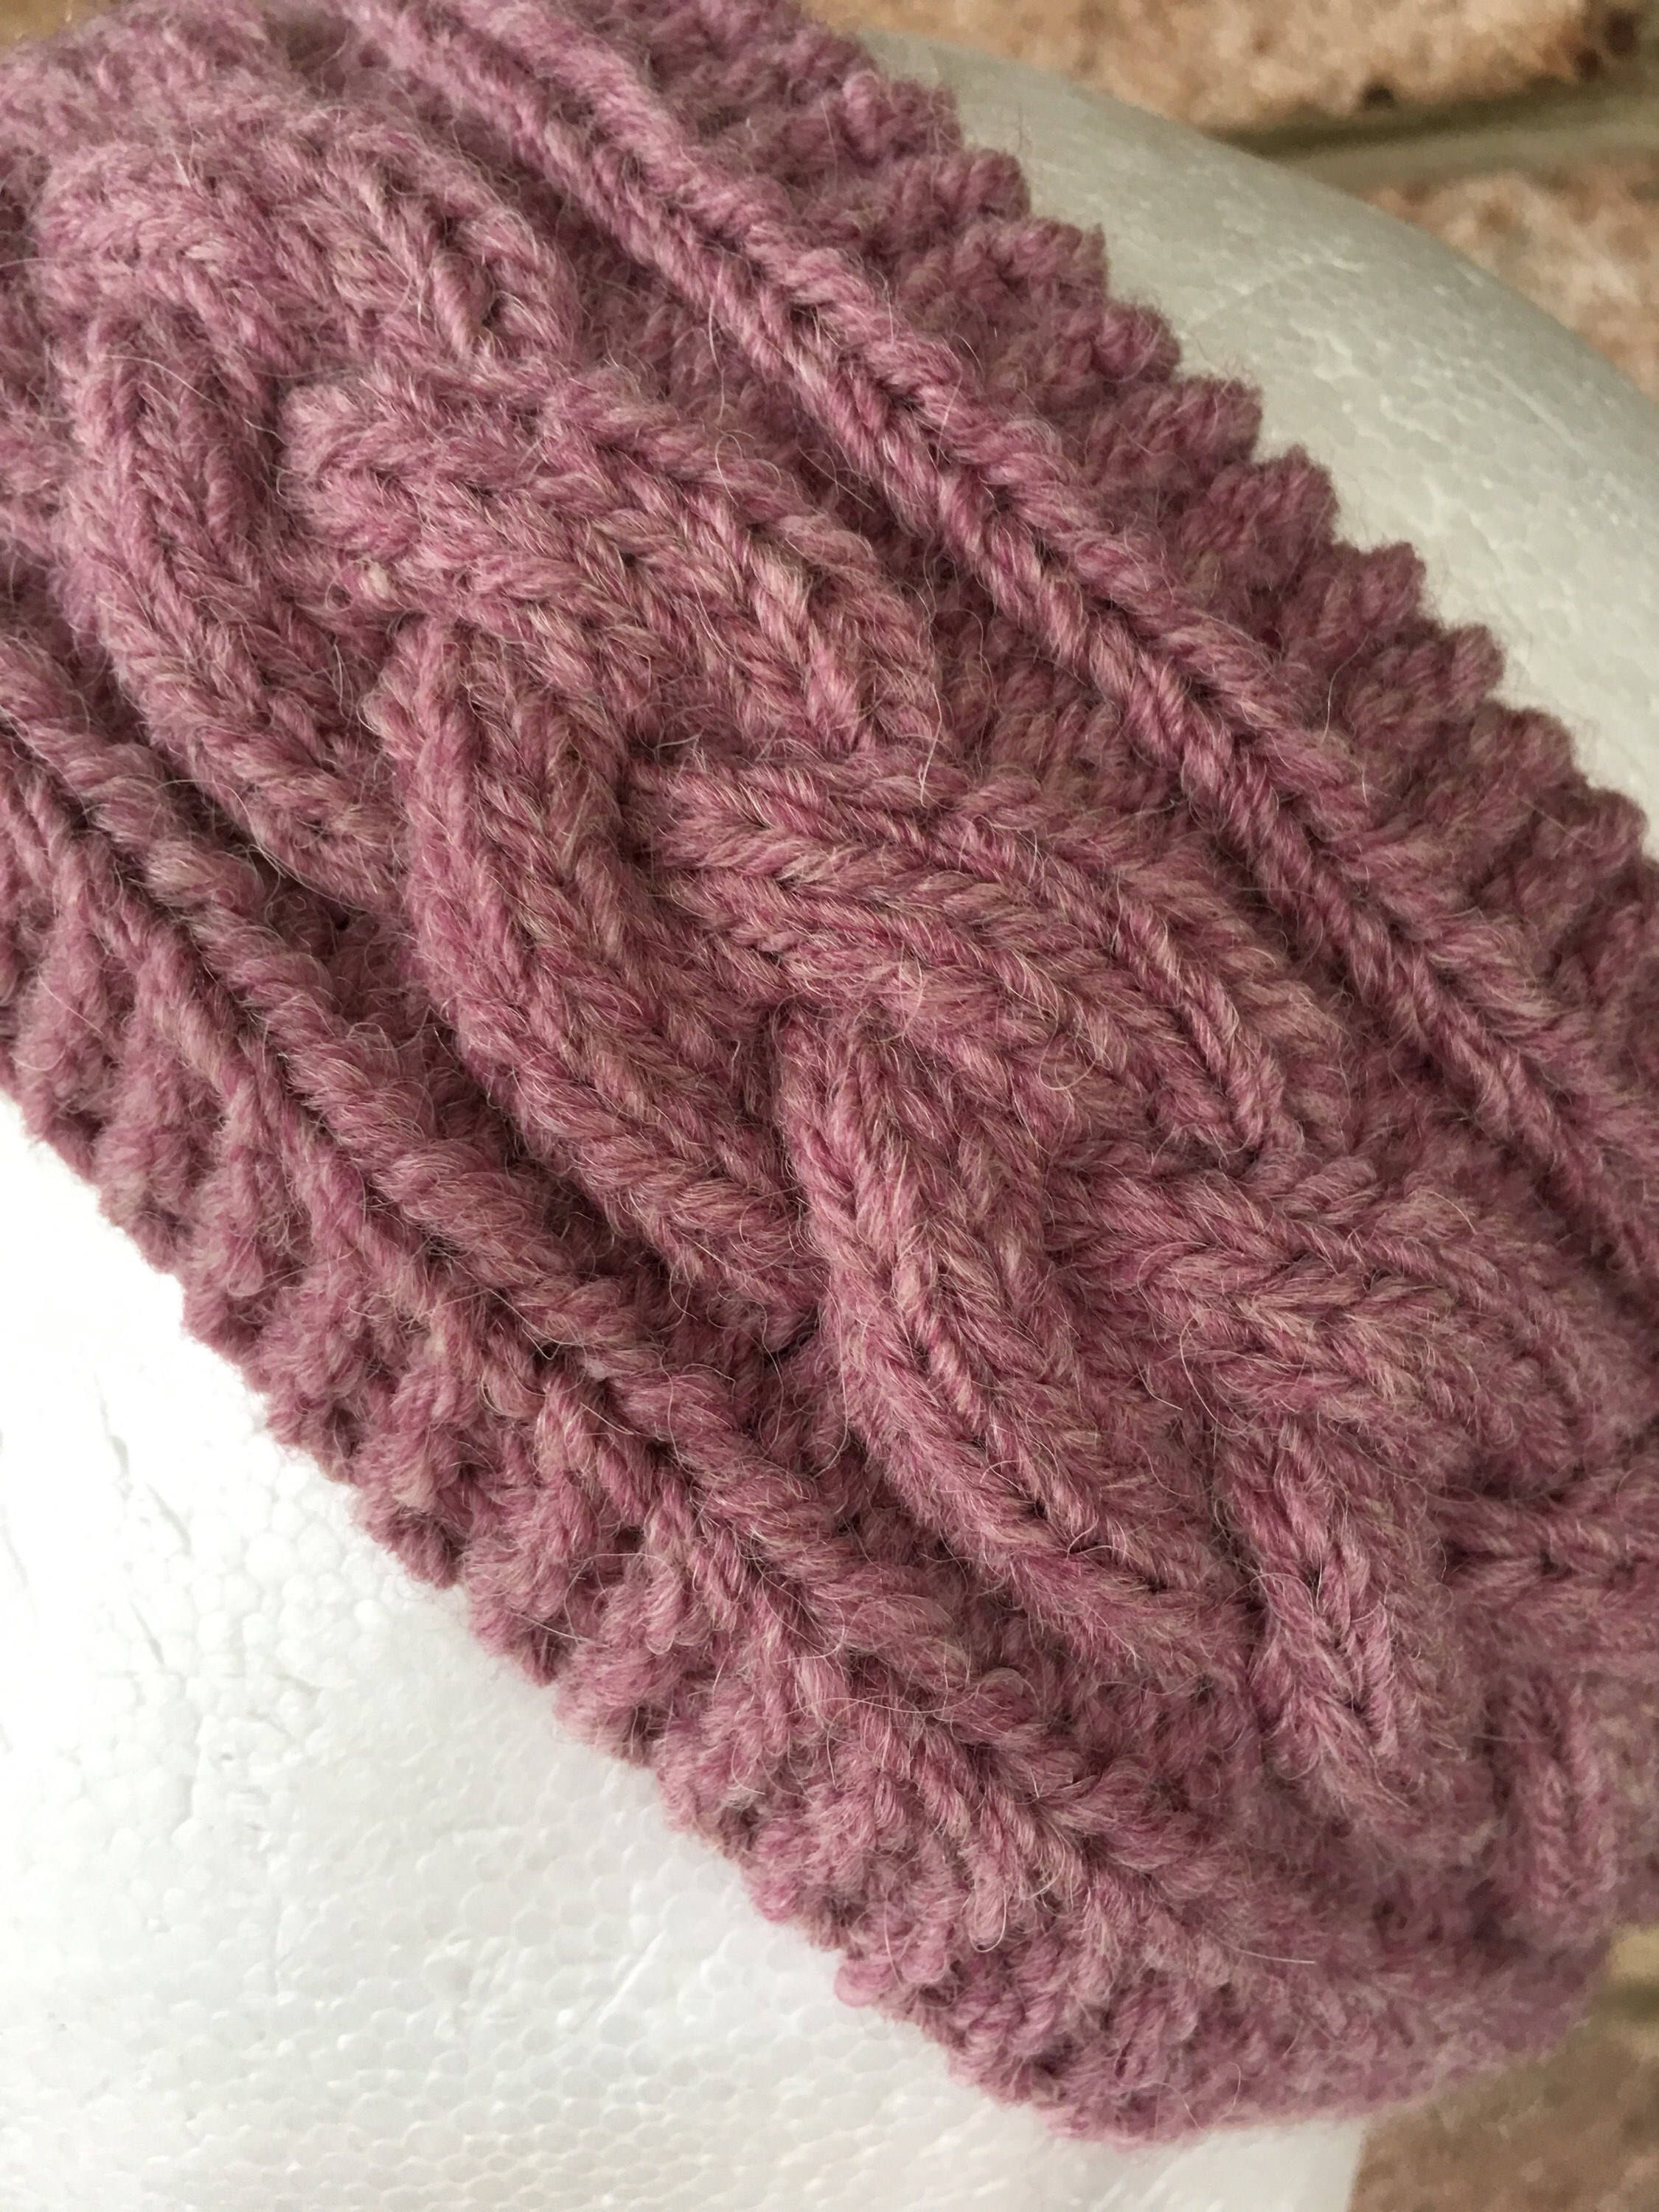 Pink knitted cable headband, knitted earwarmers, purple braided ...